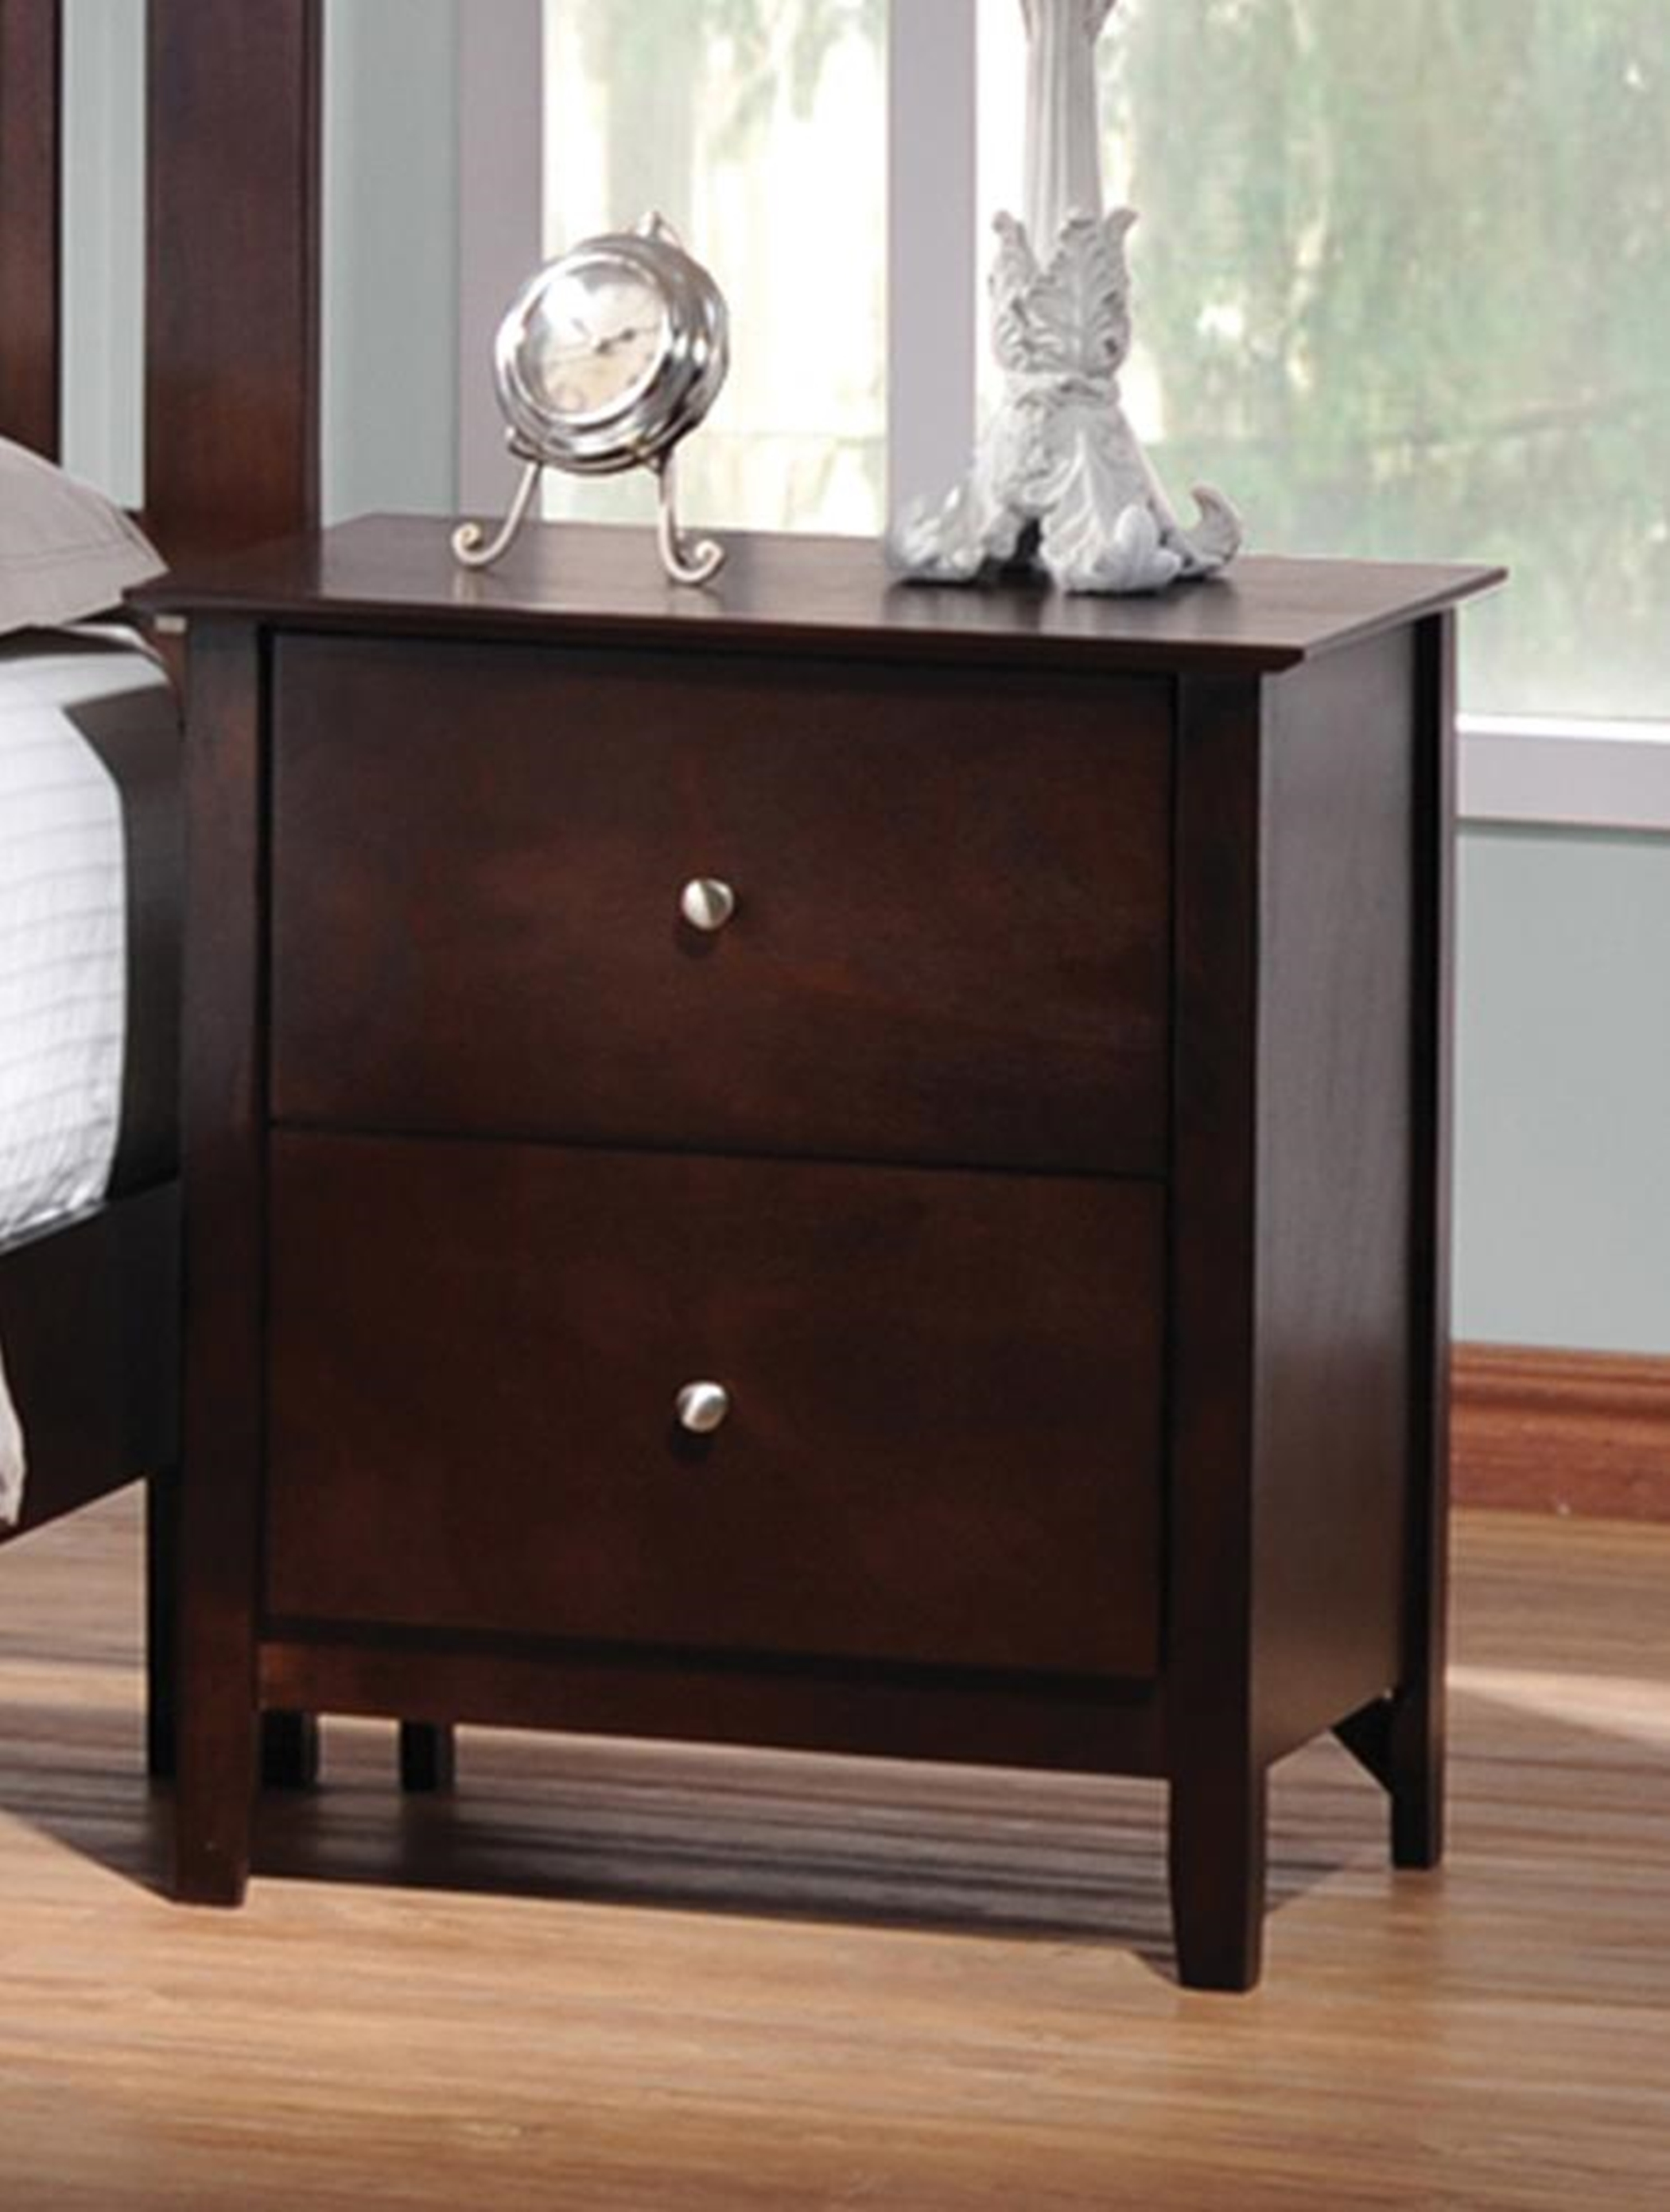 Tia Capp. Two-Drawer Nightstand